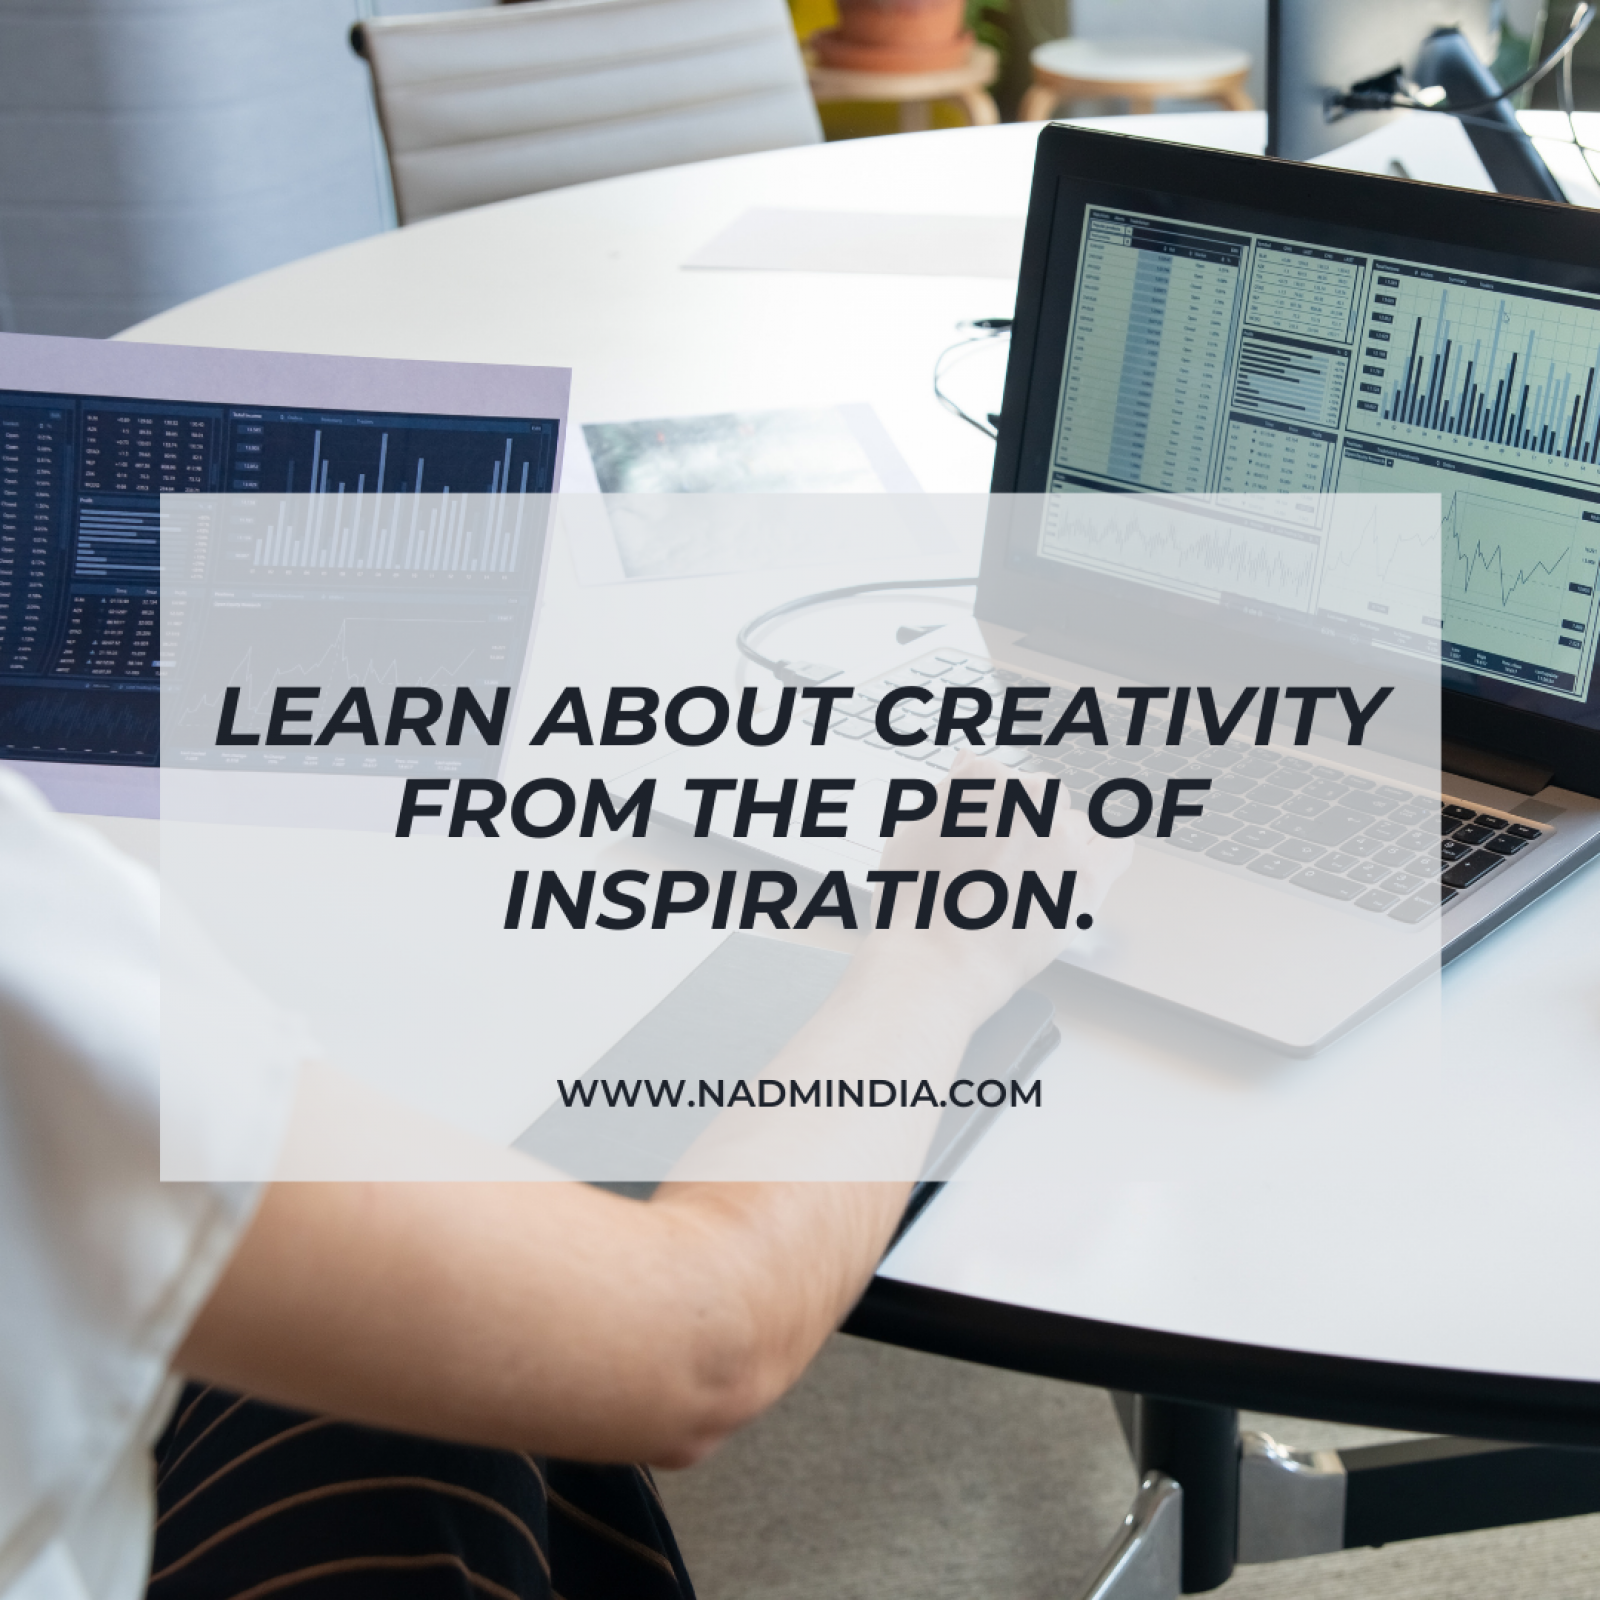 Learn about creativity from the pen of inspiration